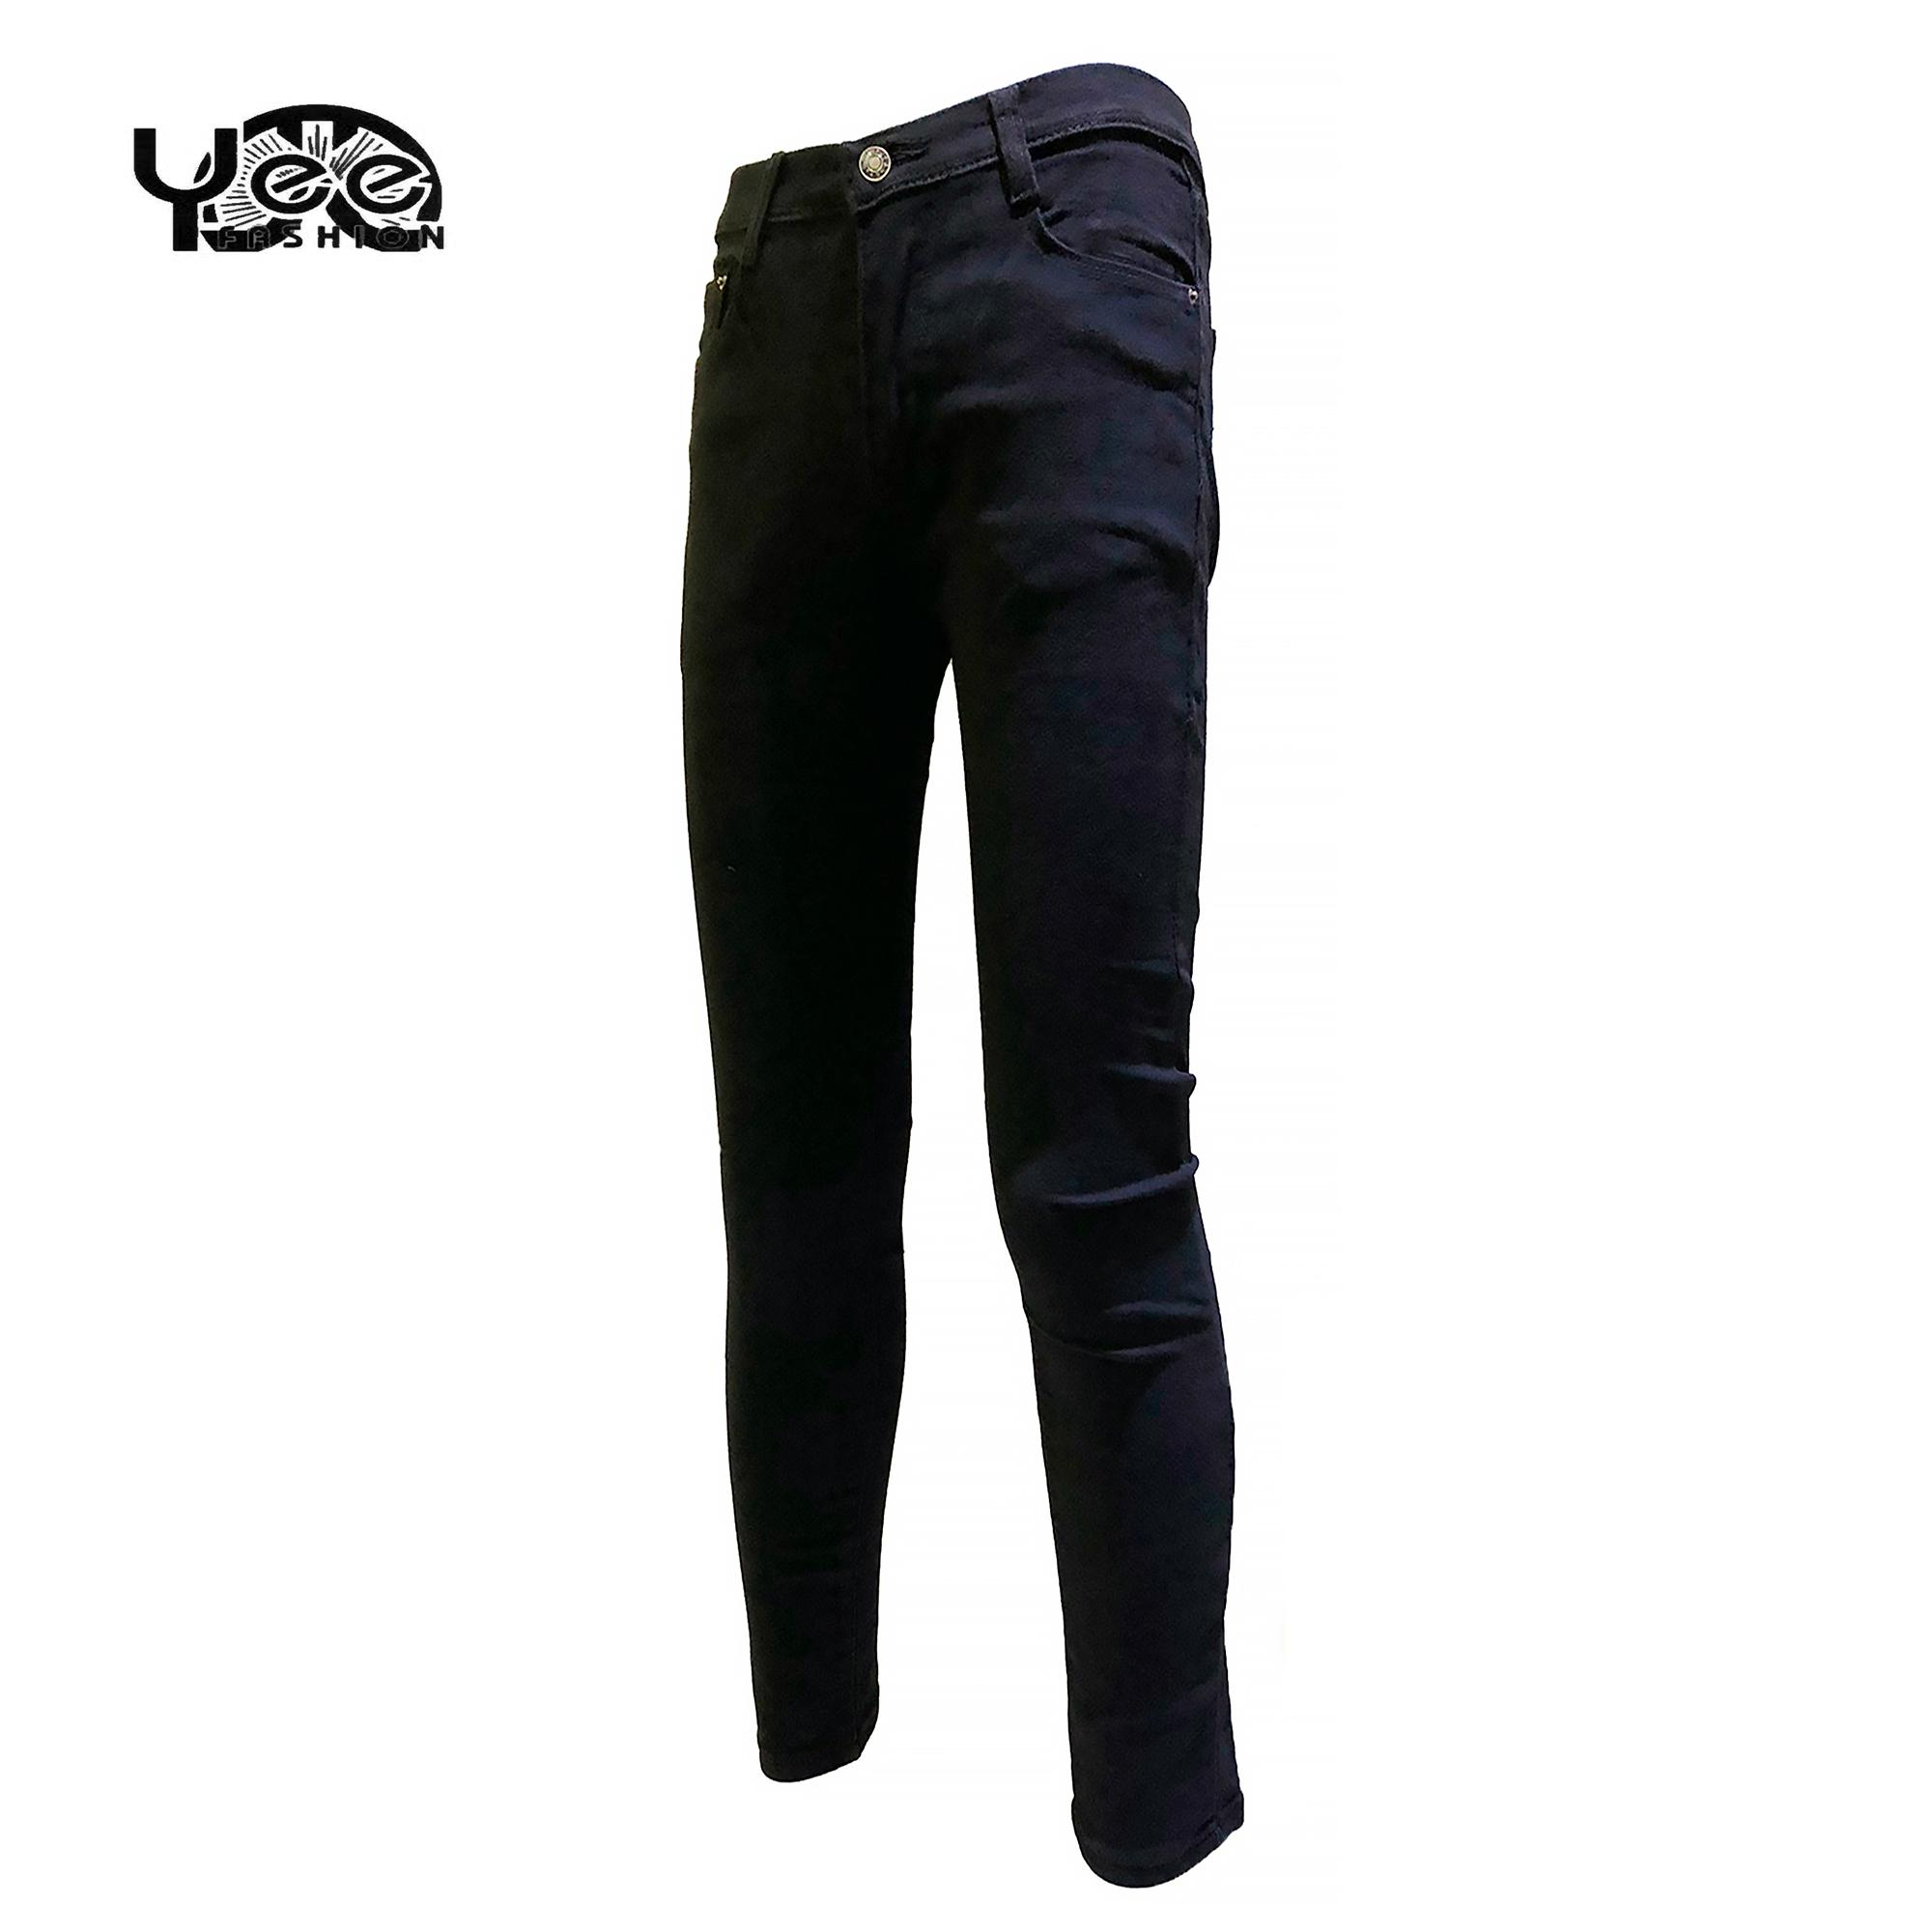 b8d2938b8 Chino Pants for sale - Chinos for Men Online Deals   Prices in ...